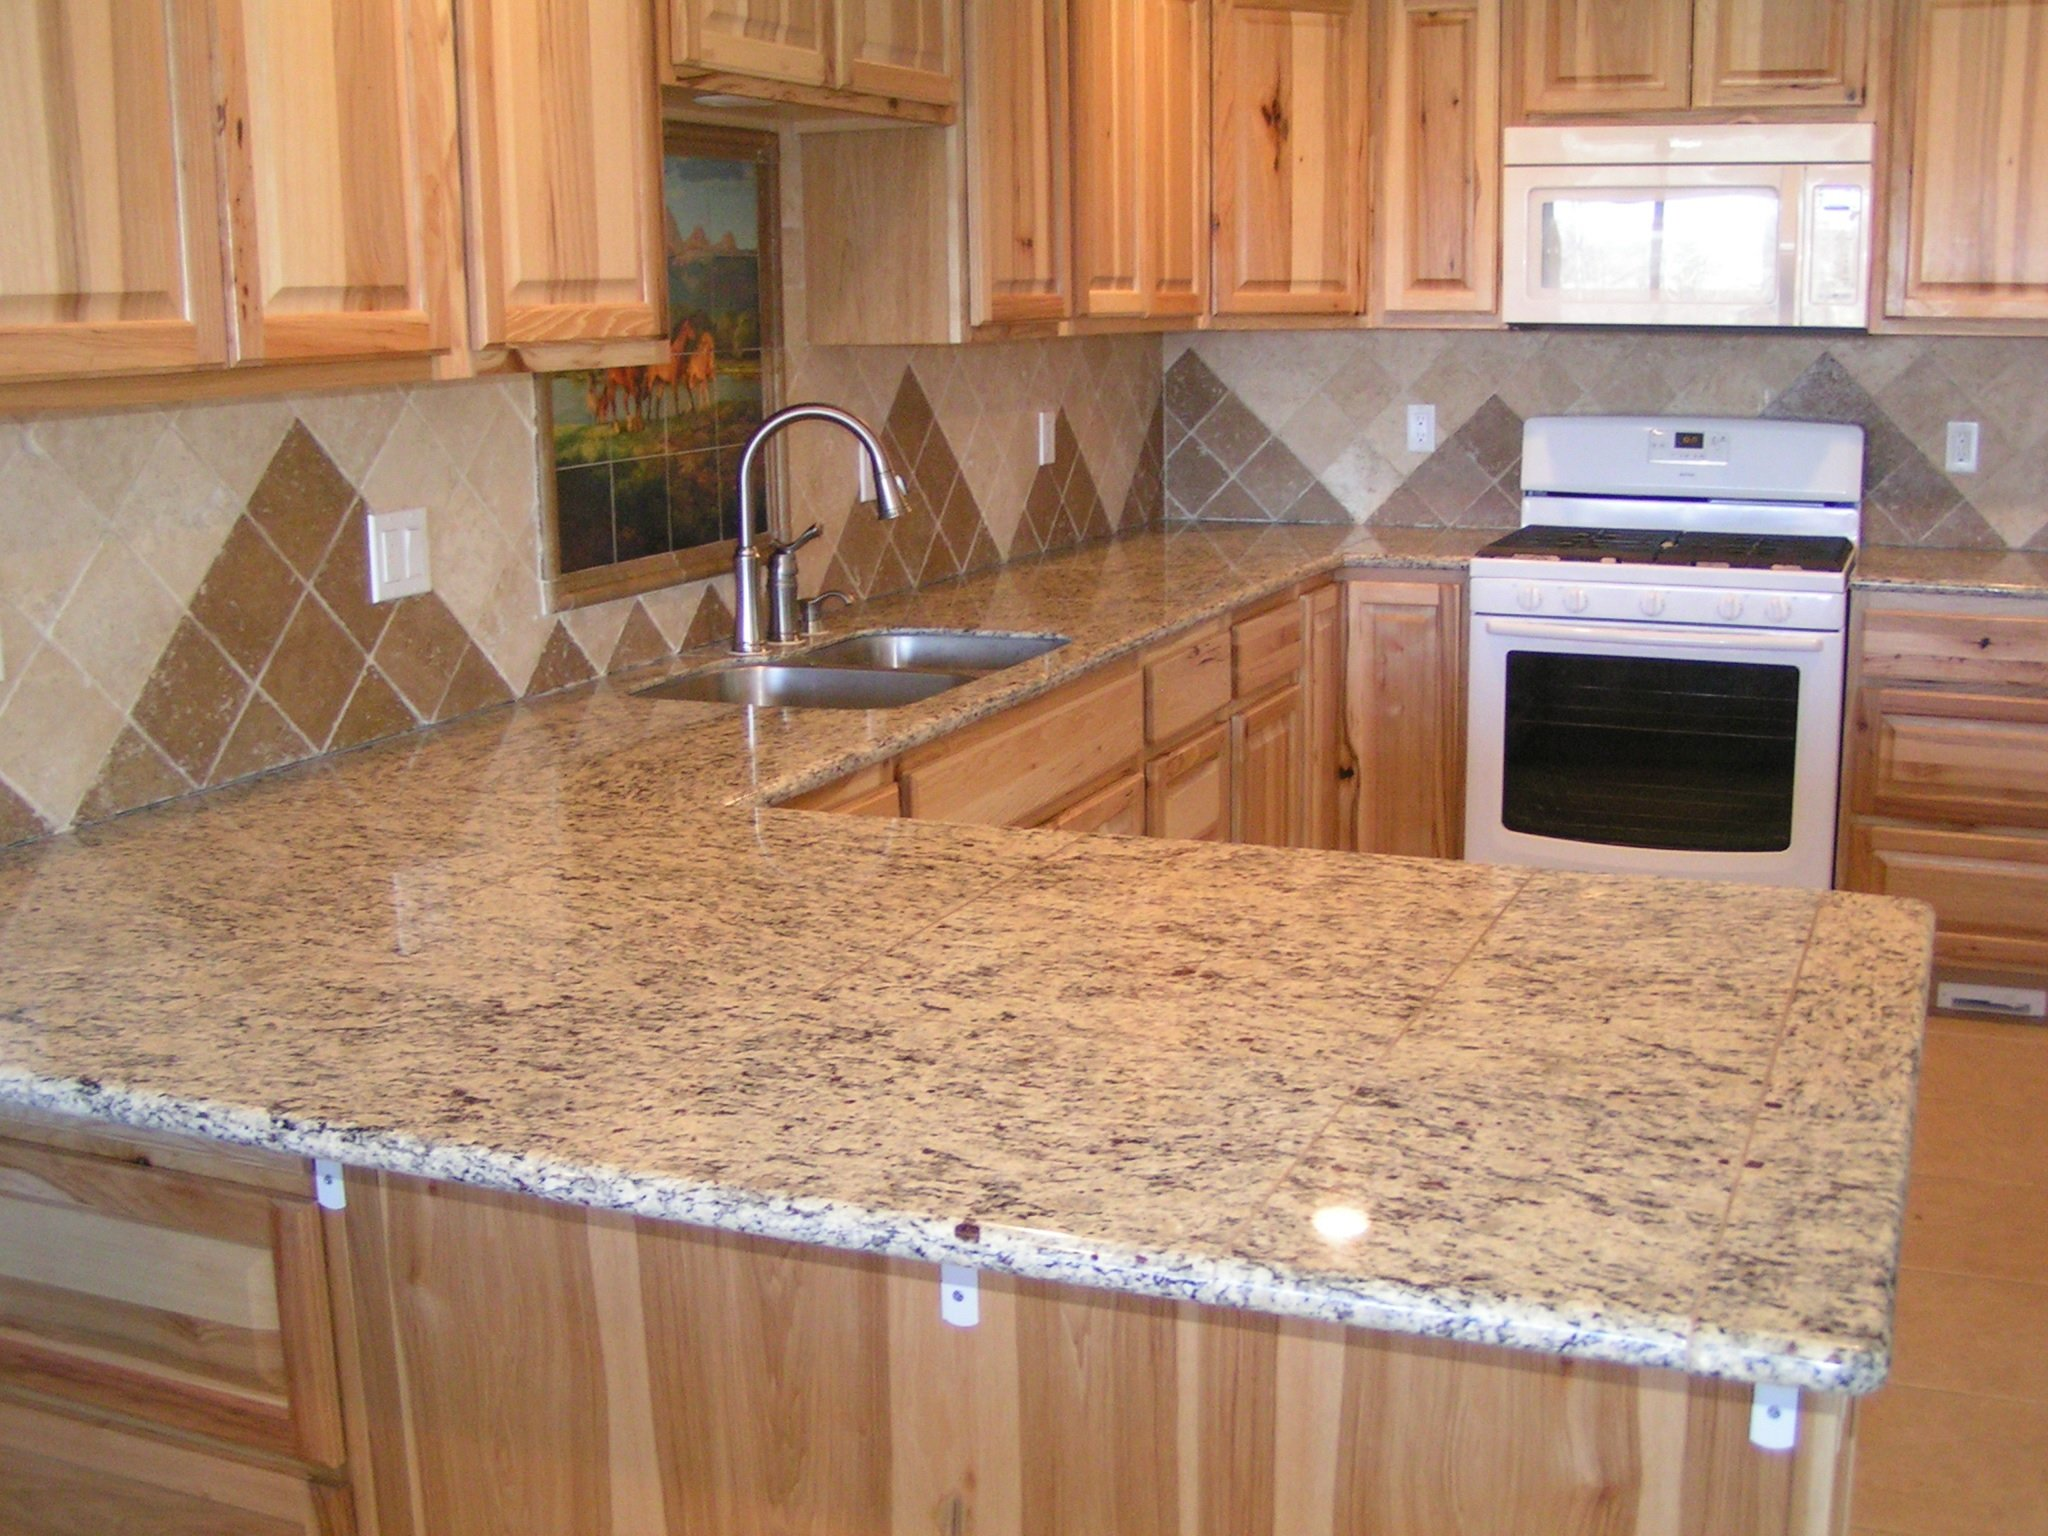 Granite Countertop Image